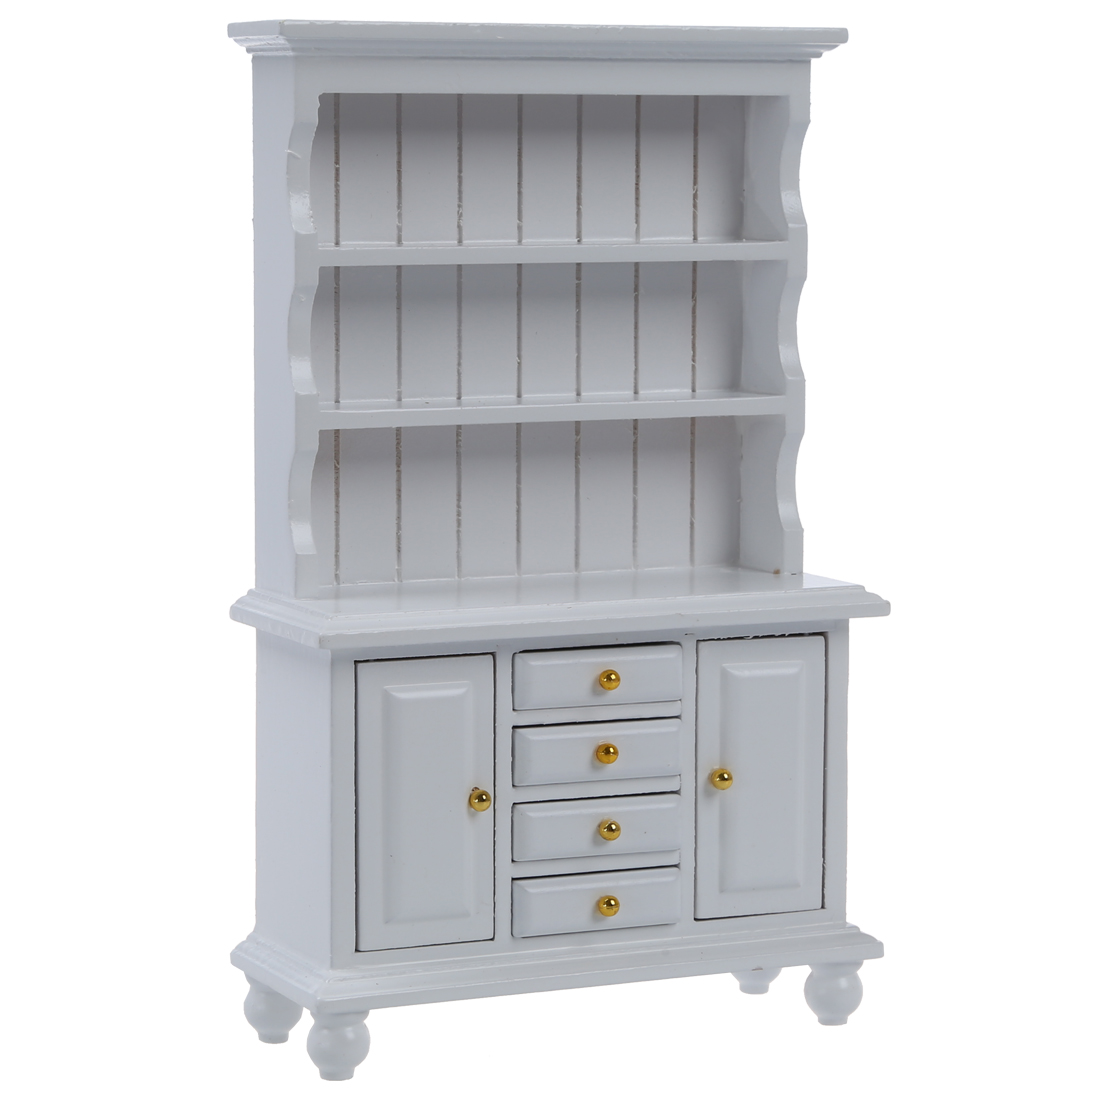 Us 6 63 26 Off 1 12 Simulation Miniature Wooden Furniture Toys Dollhouse Wood Furniture Dolls Room Cabinet Bookcase For Kids Play Toy White In